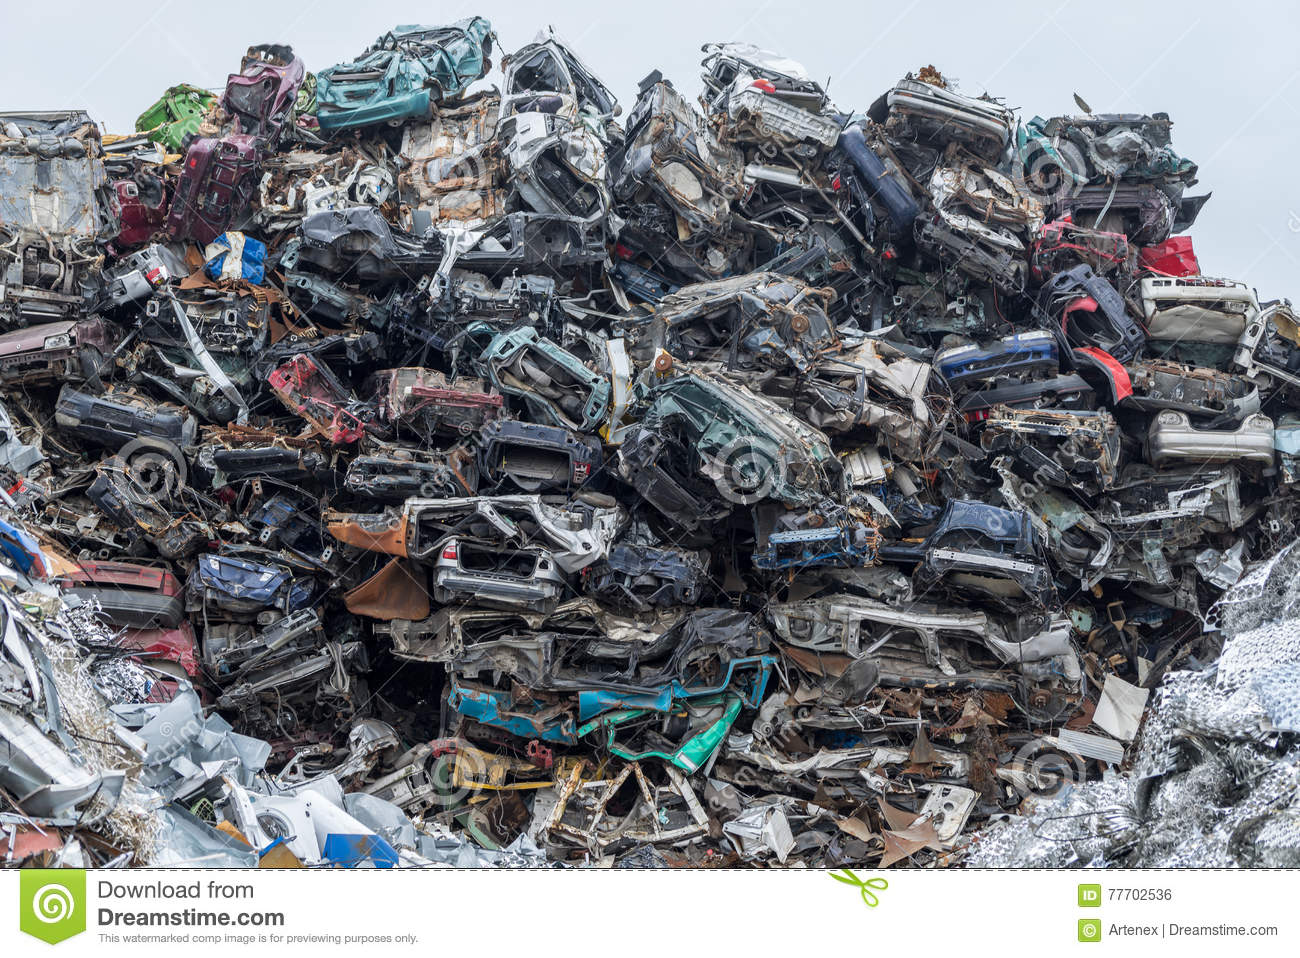 Scrap Metal Prices Cars >> Dumping Ground. Scrap Metal Heap. Compressed Crushed Cars Is Returned For Recycling. Iron Waste ...